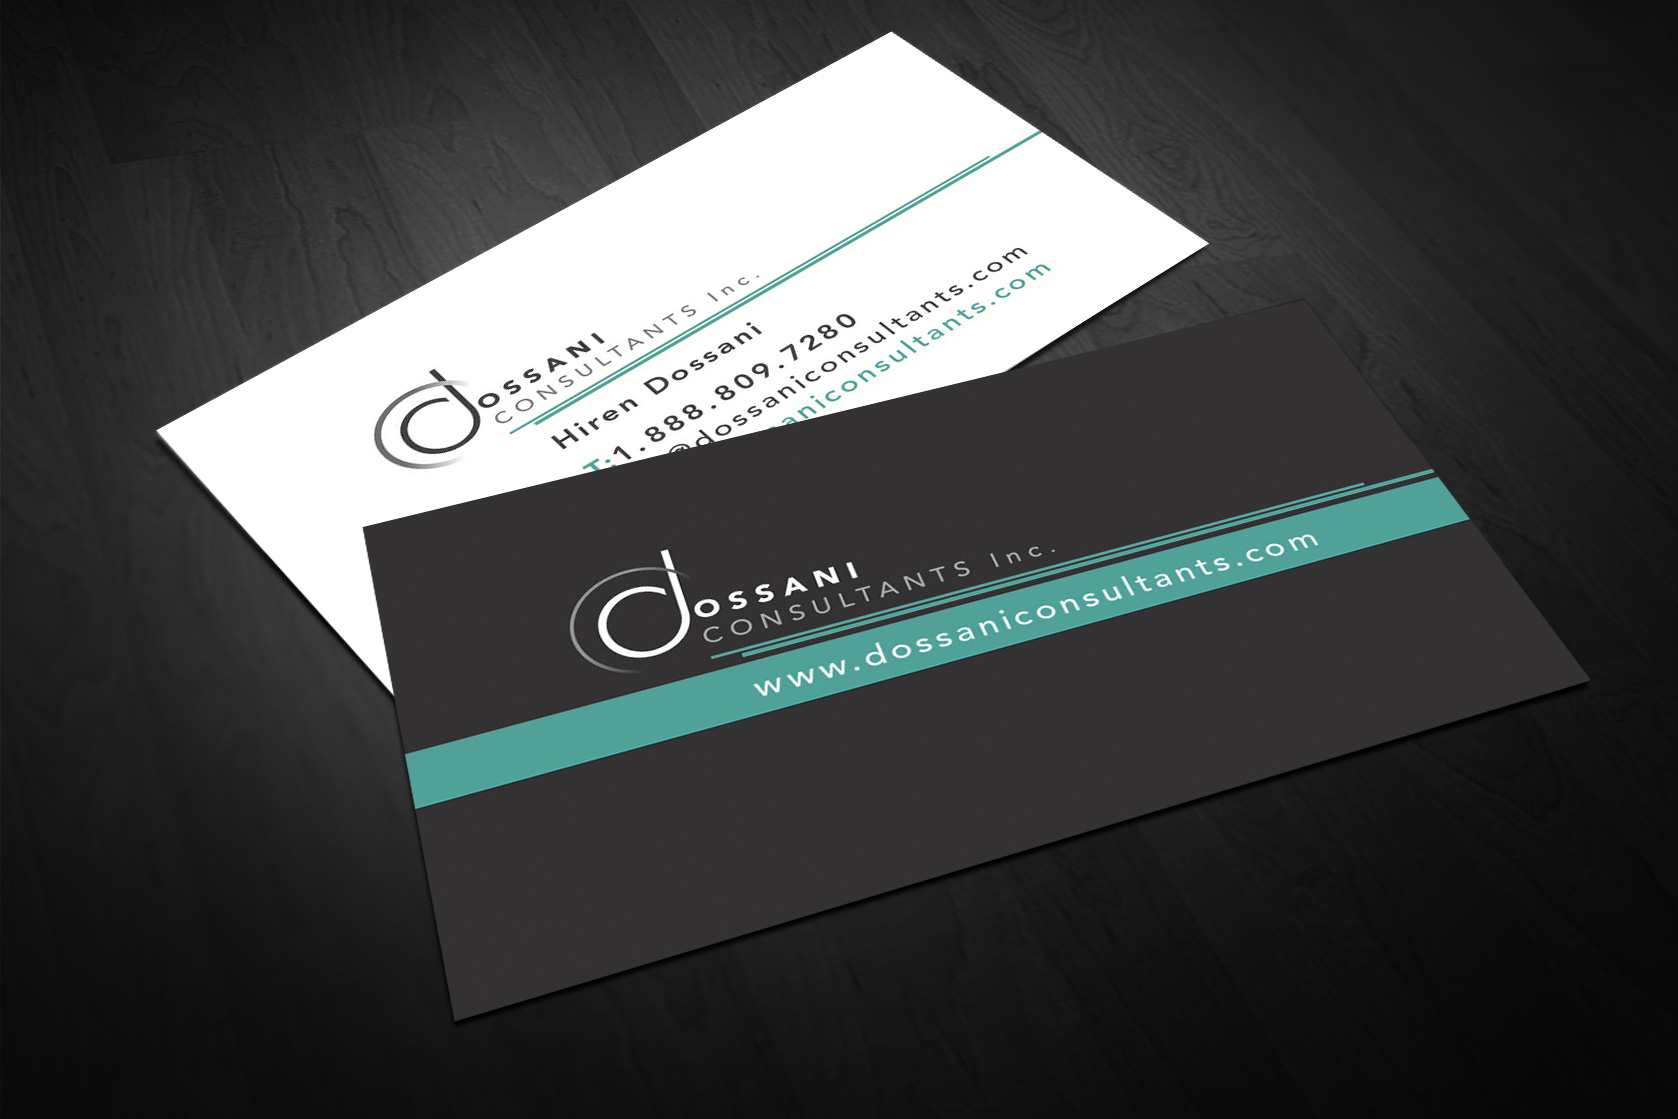 Dossani Consultant BusinessCard Design – Lines & Beyond